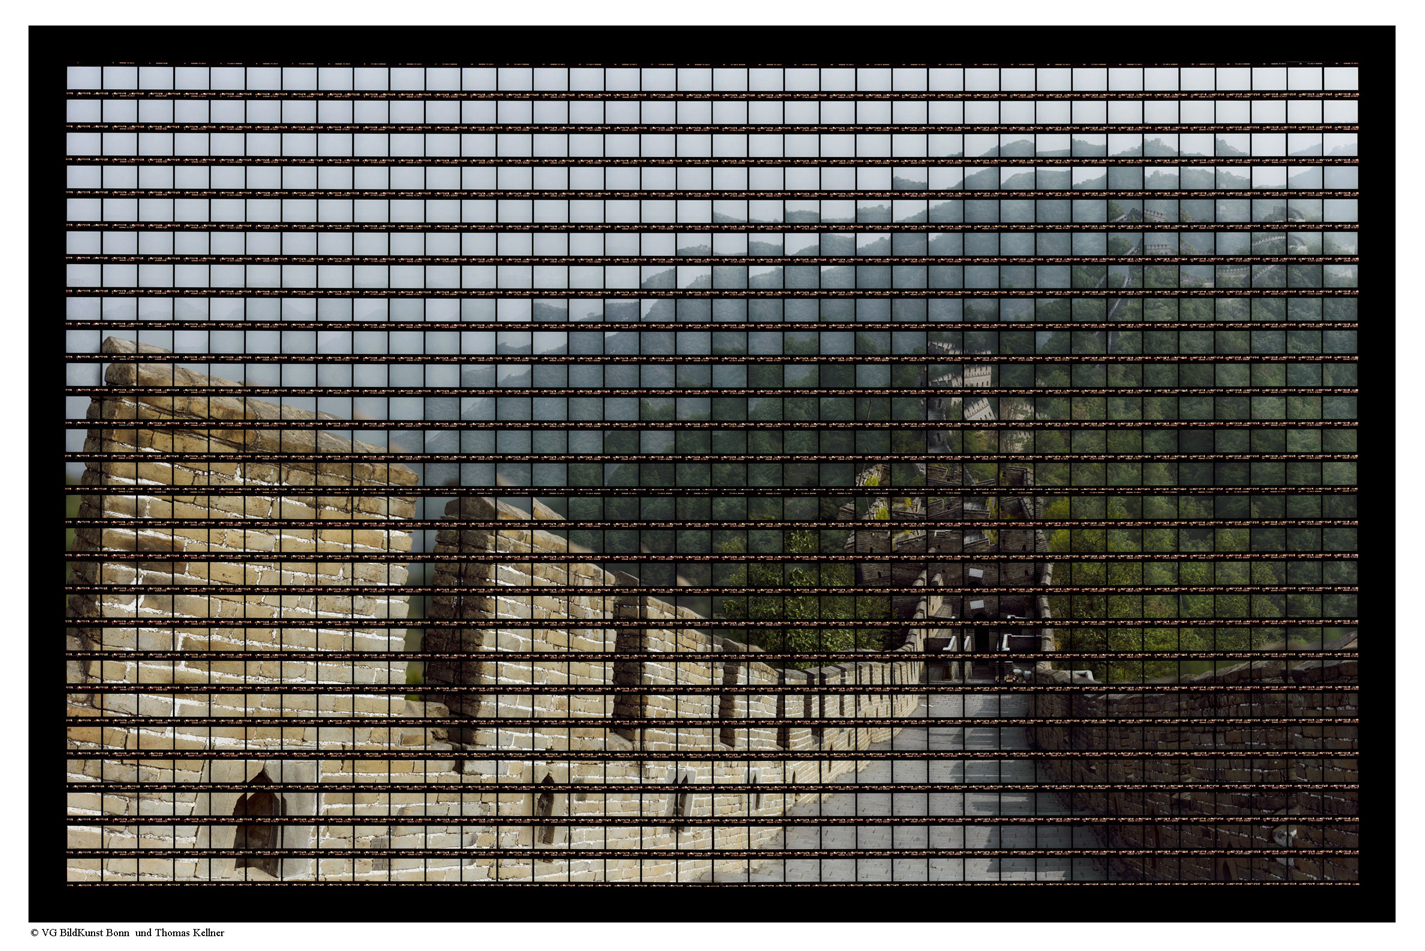 "Beijing, Great Wall of Mutianyu 1 , 2006, C-Print, 136,5cm x 87,5cm / 53,74"" x 34,45"""